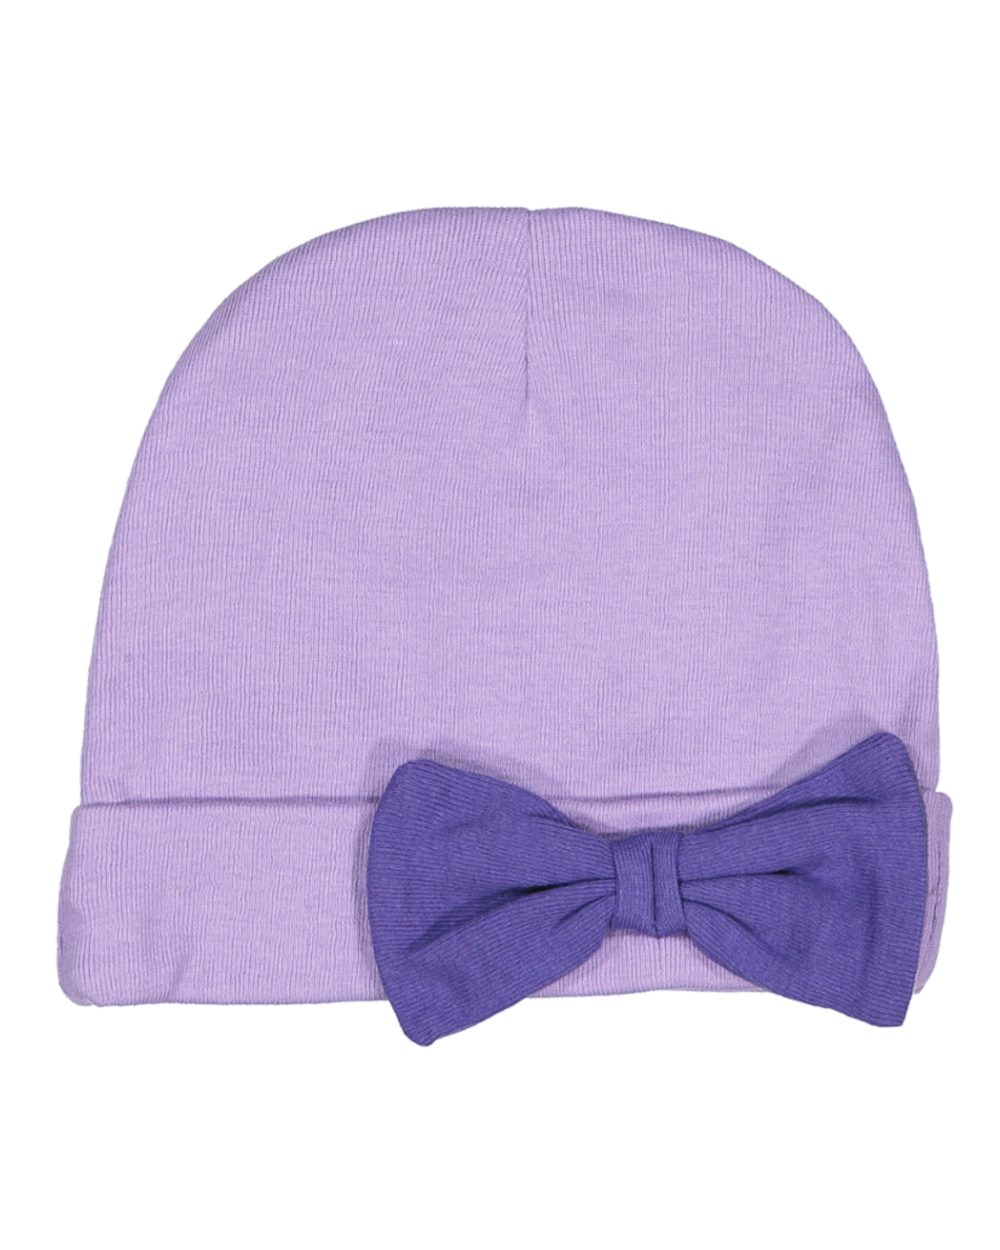 Rabbit Skins 4453 - Infant Baby Rib Bow Cap